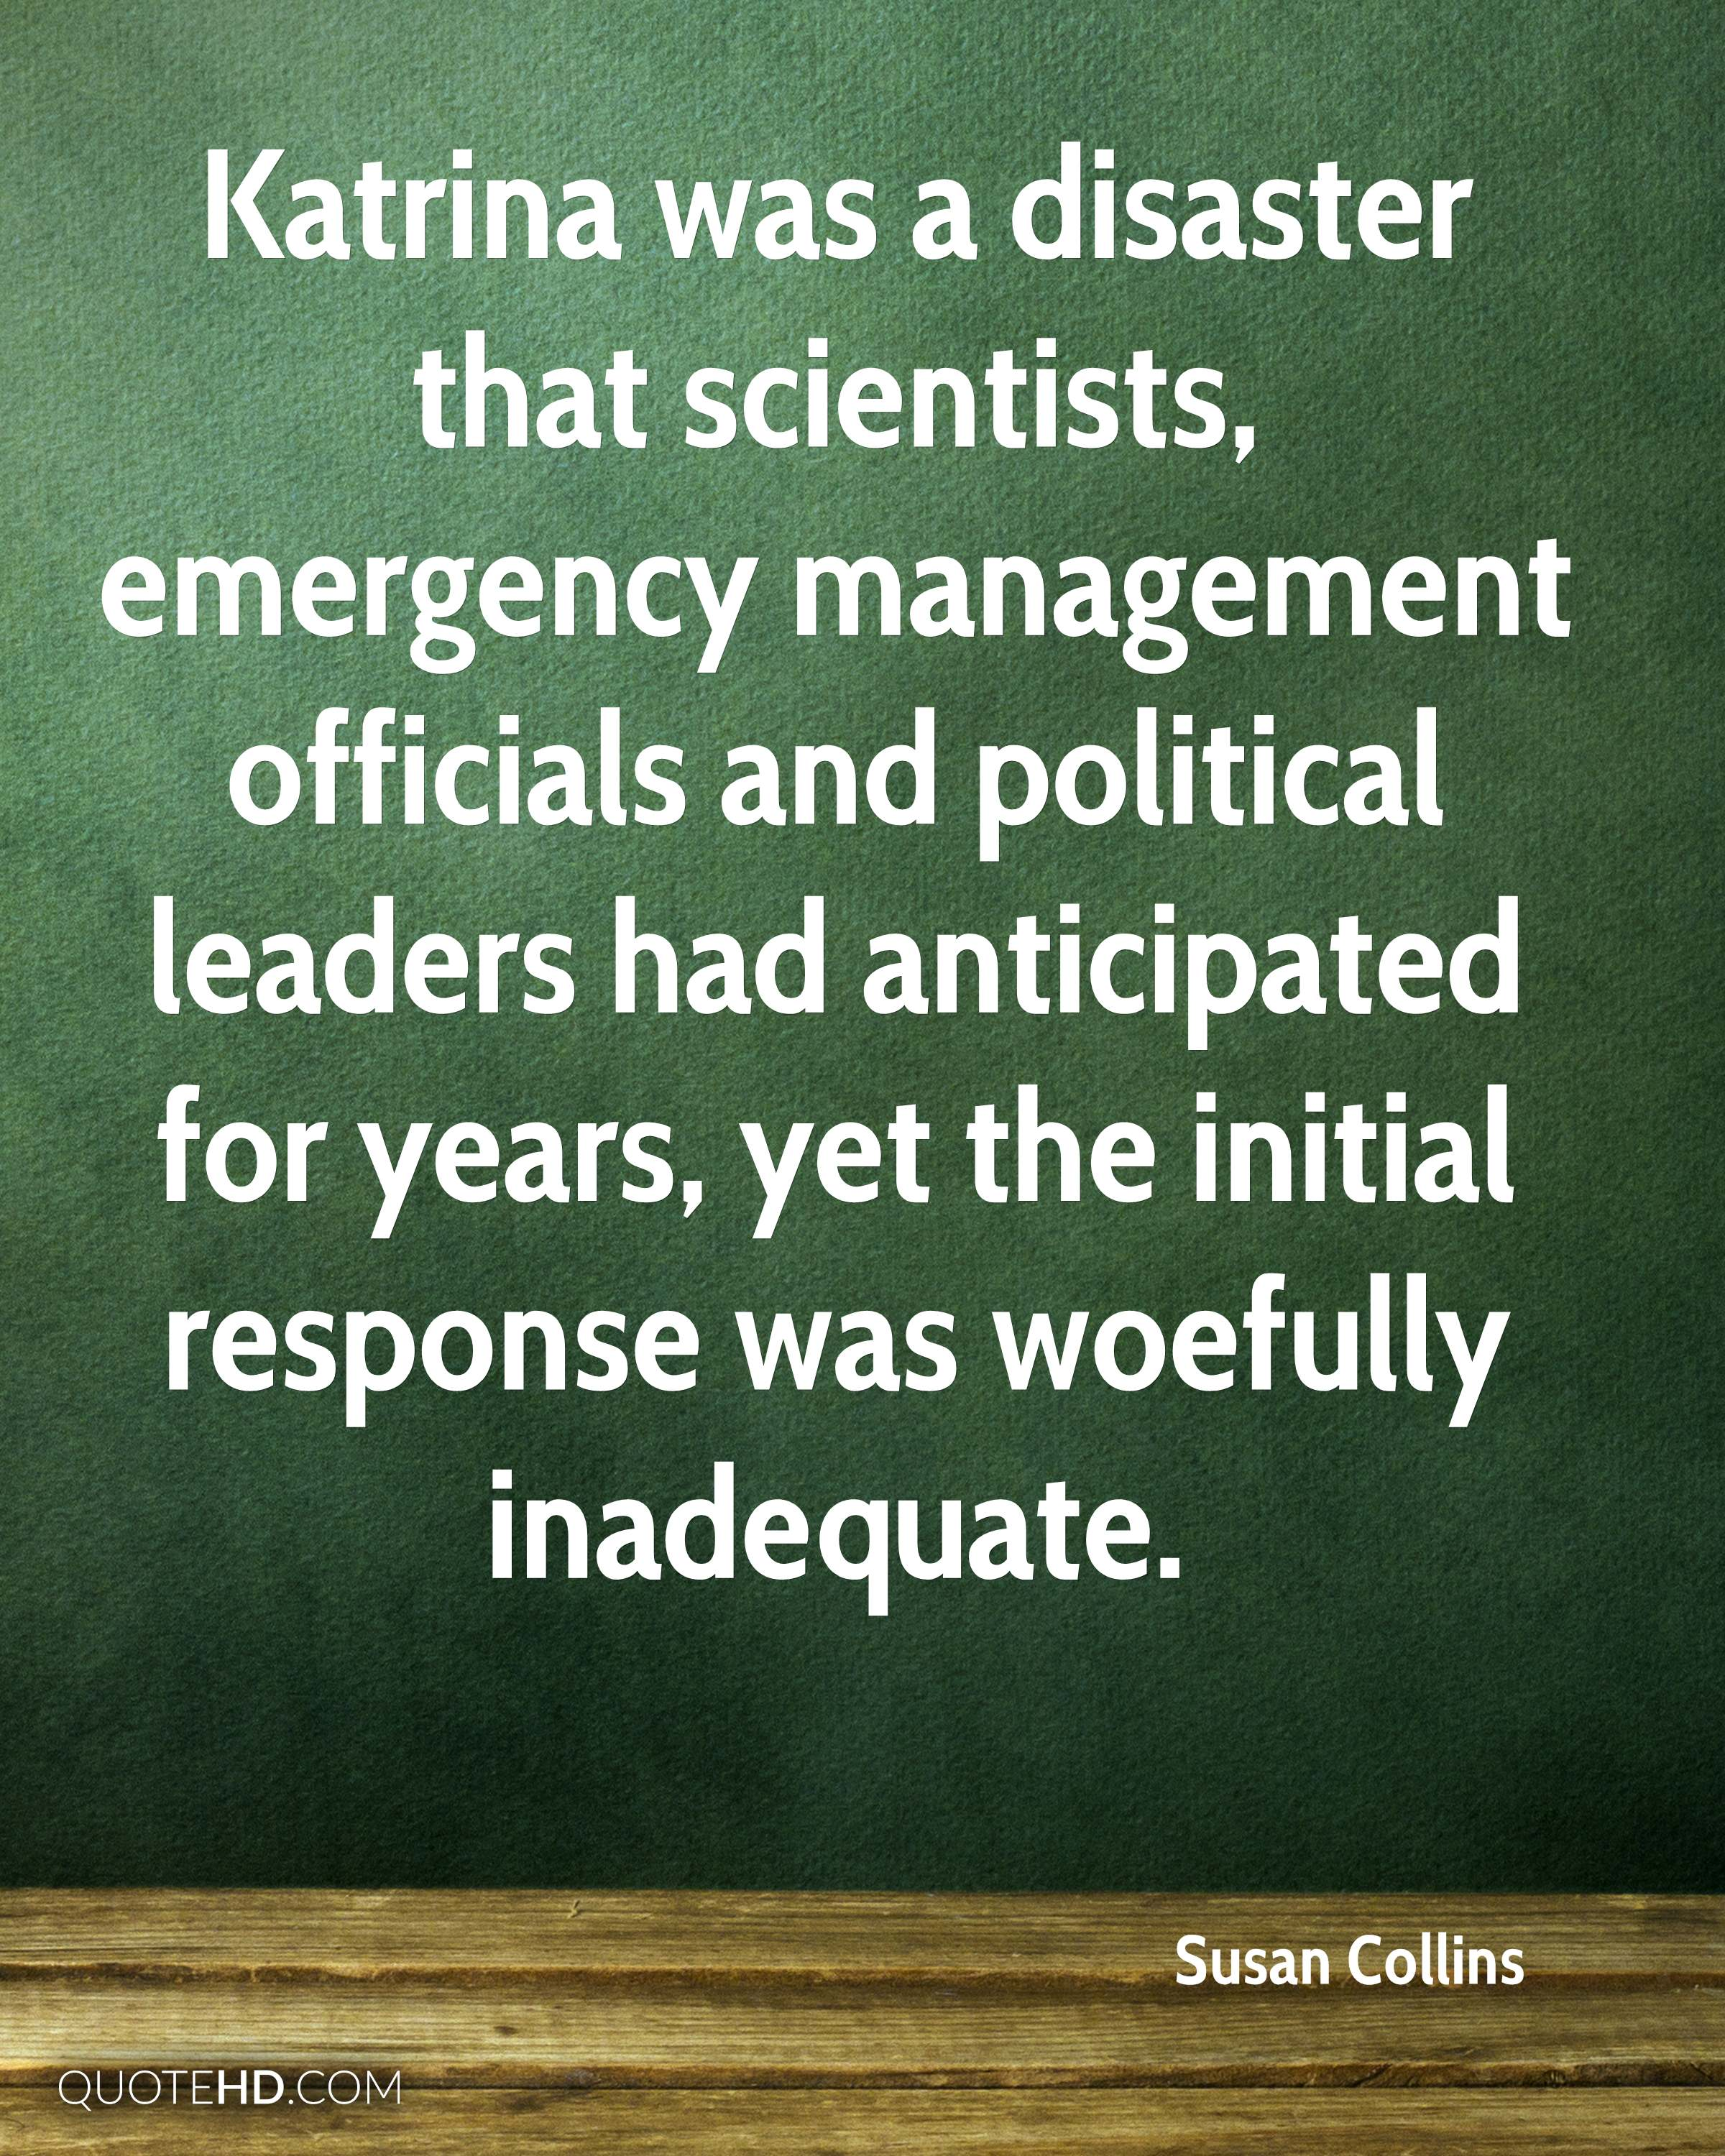 Katrina was a disaster that scientists, emergency management officials and political leaders had anticipated for years, yet the initial response was woefully inadequate.